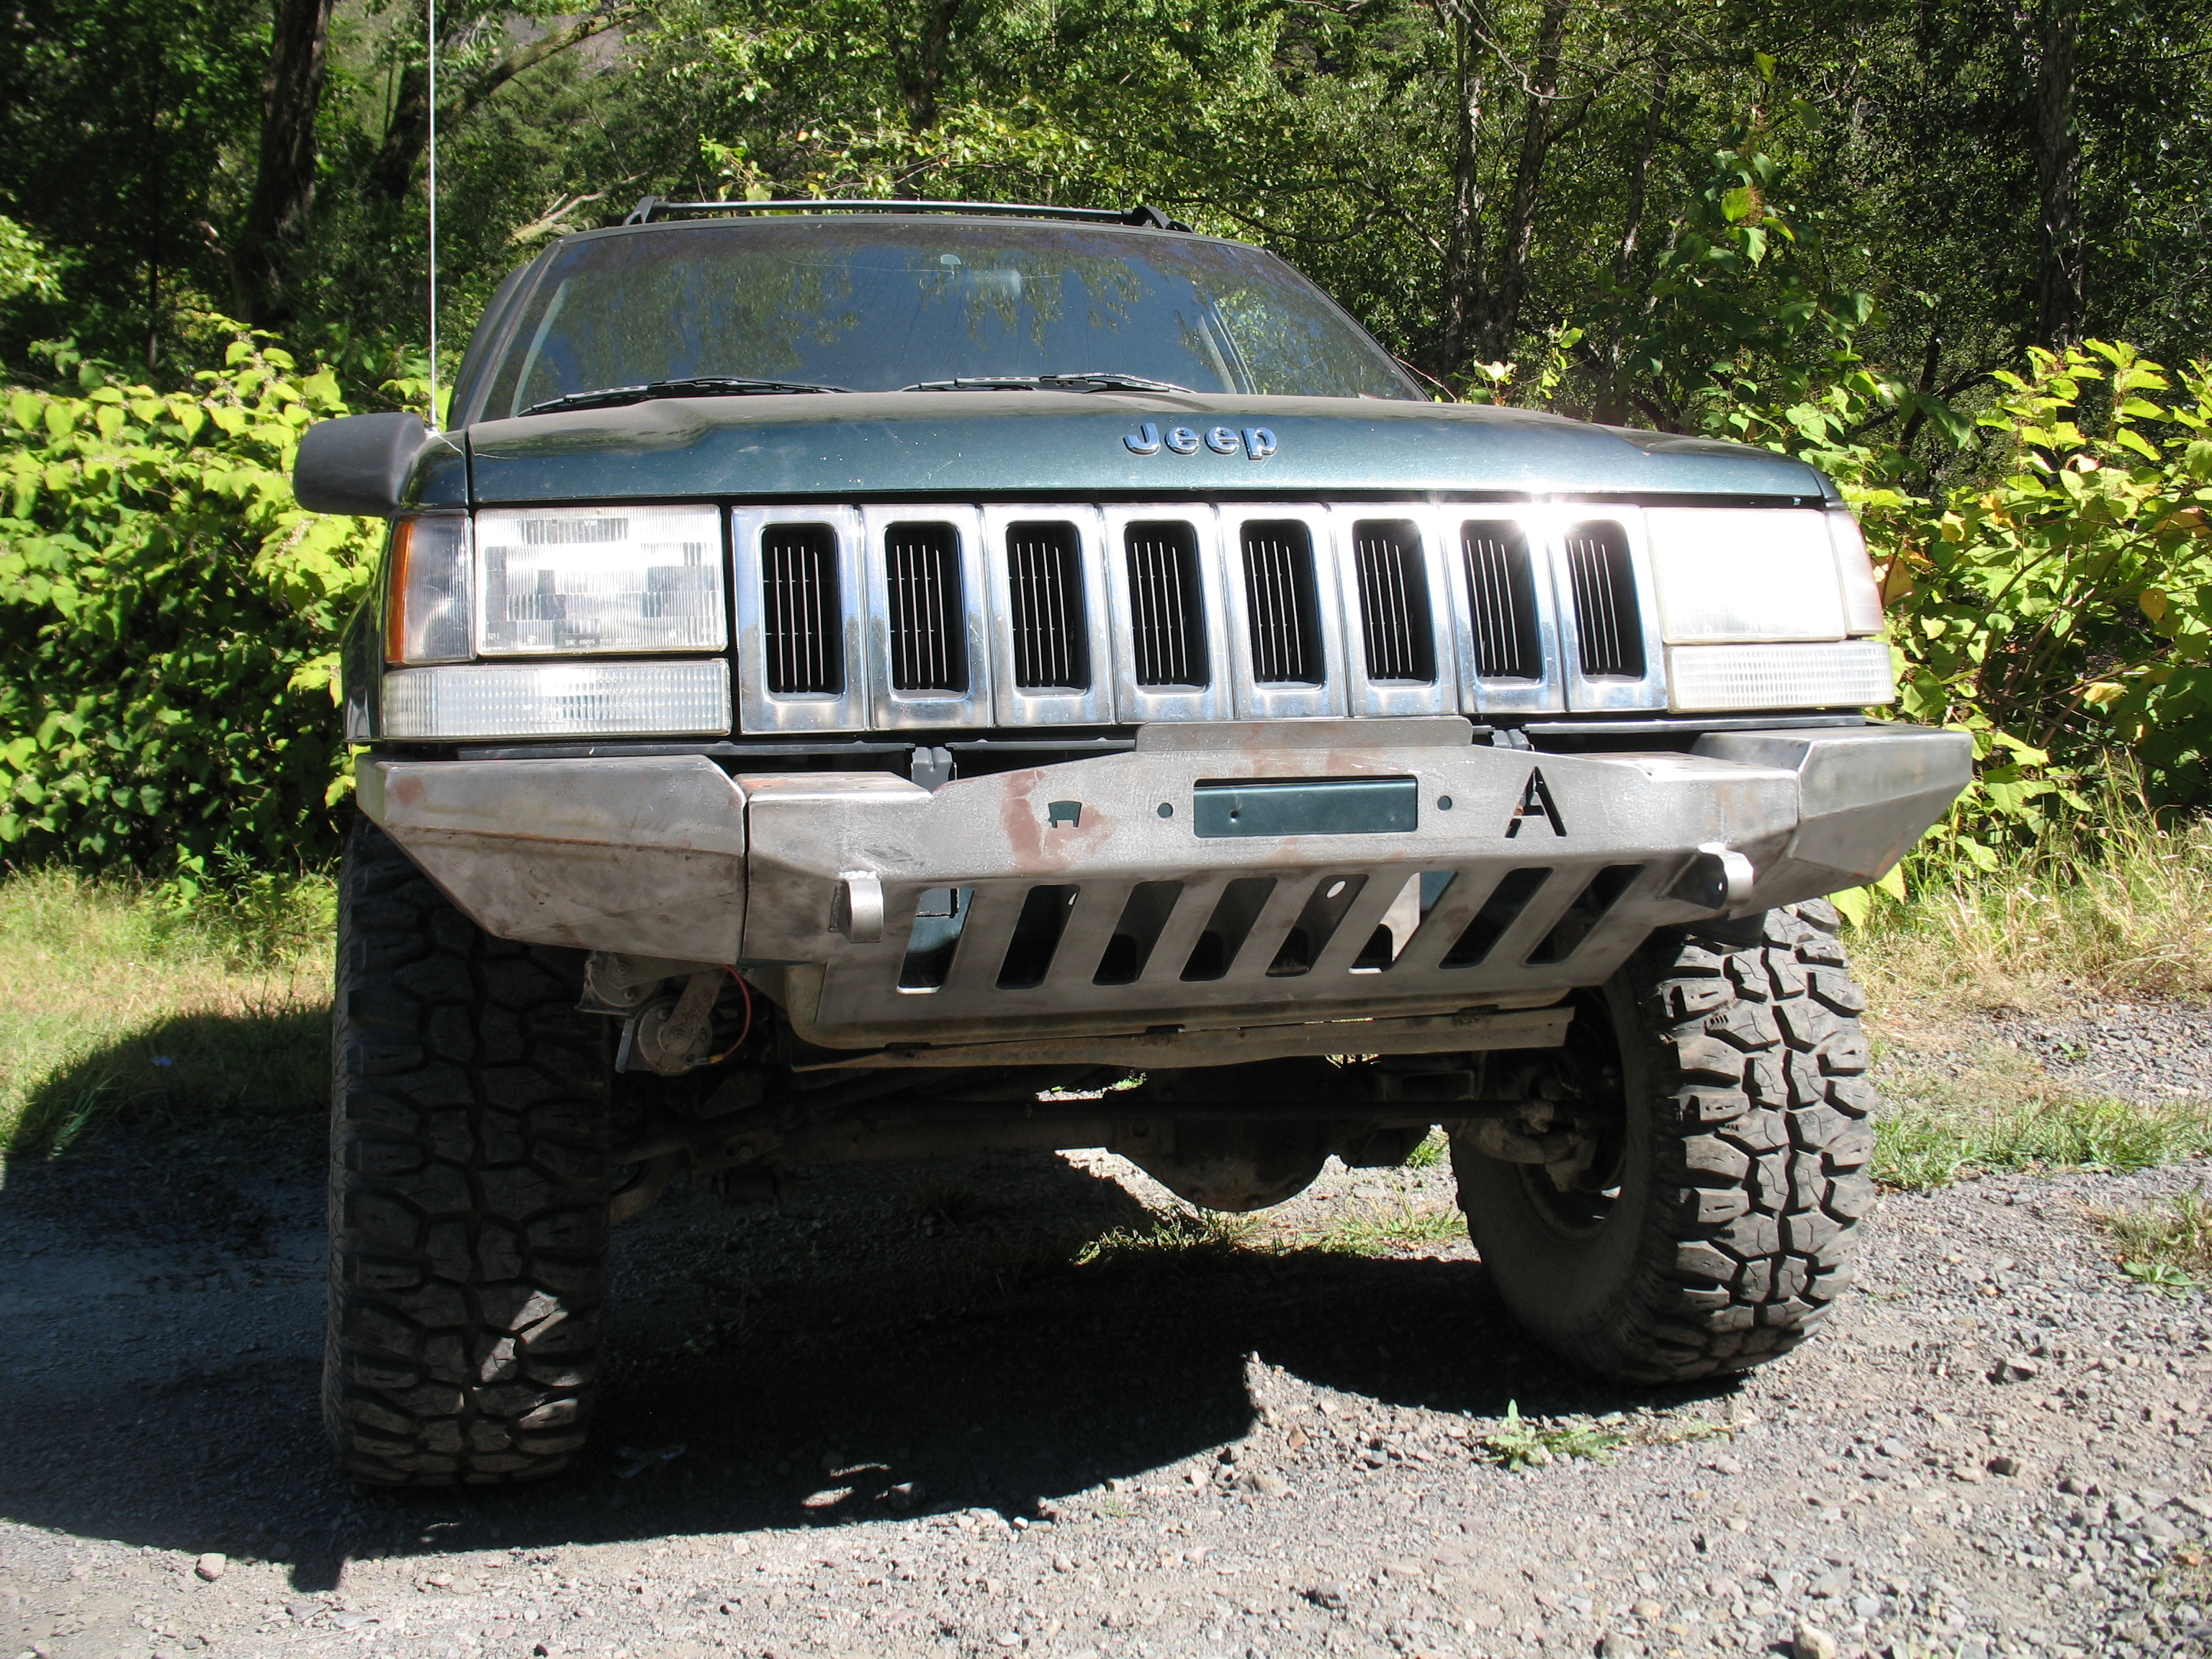 Elite Jeep Grand Cherokee ZJ Modular Plain Front Winch Bumper ('93